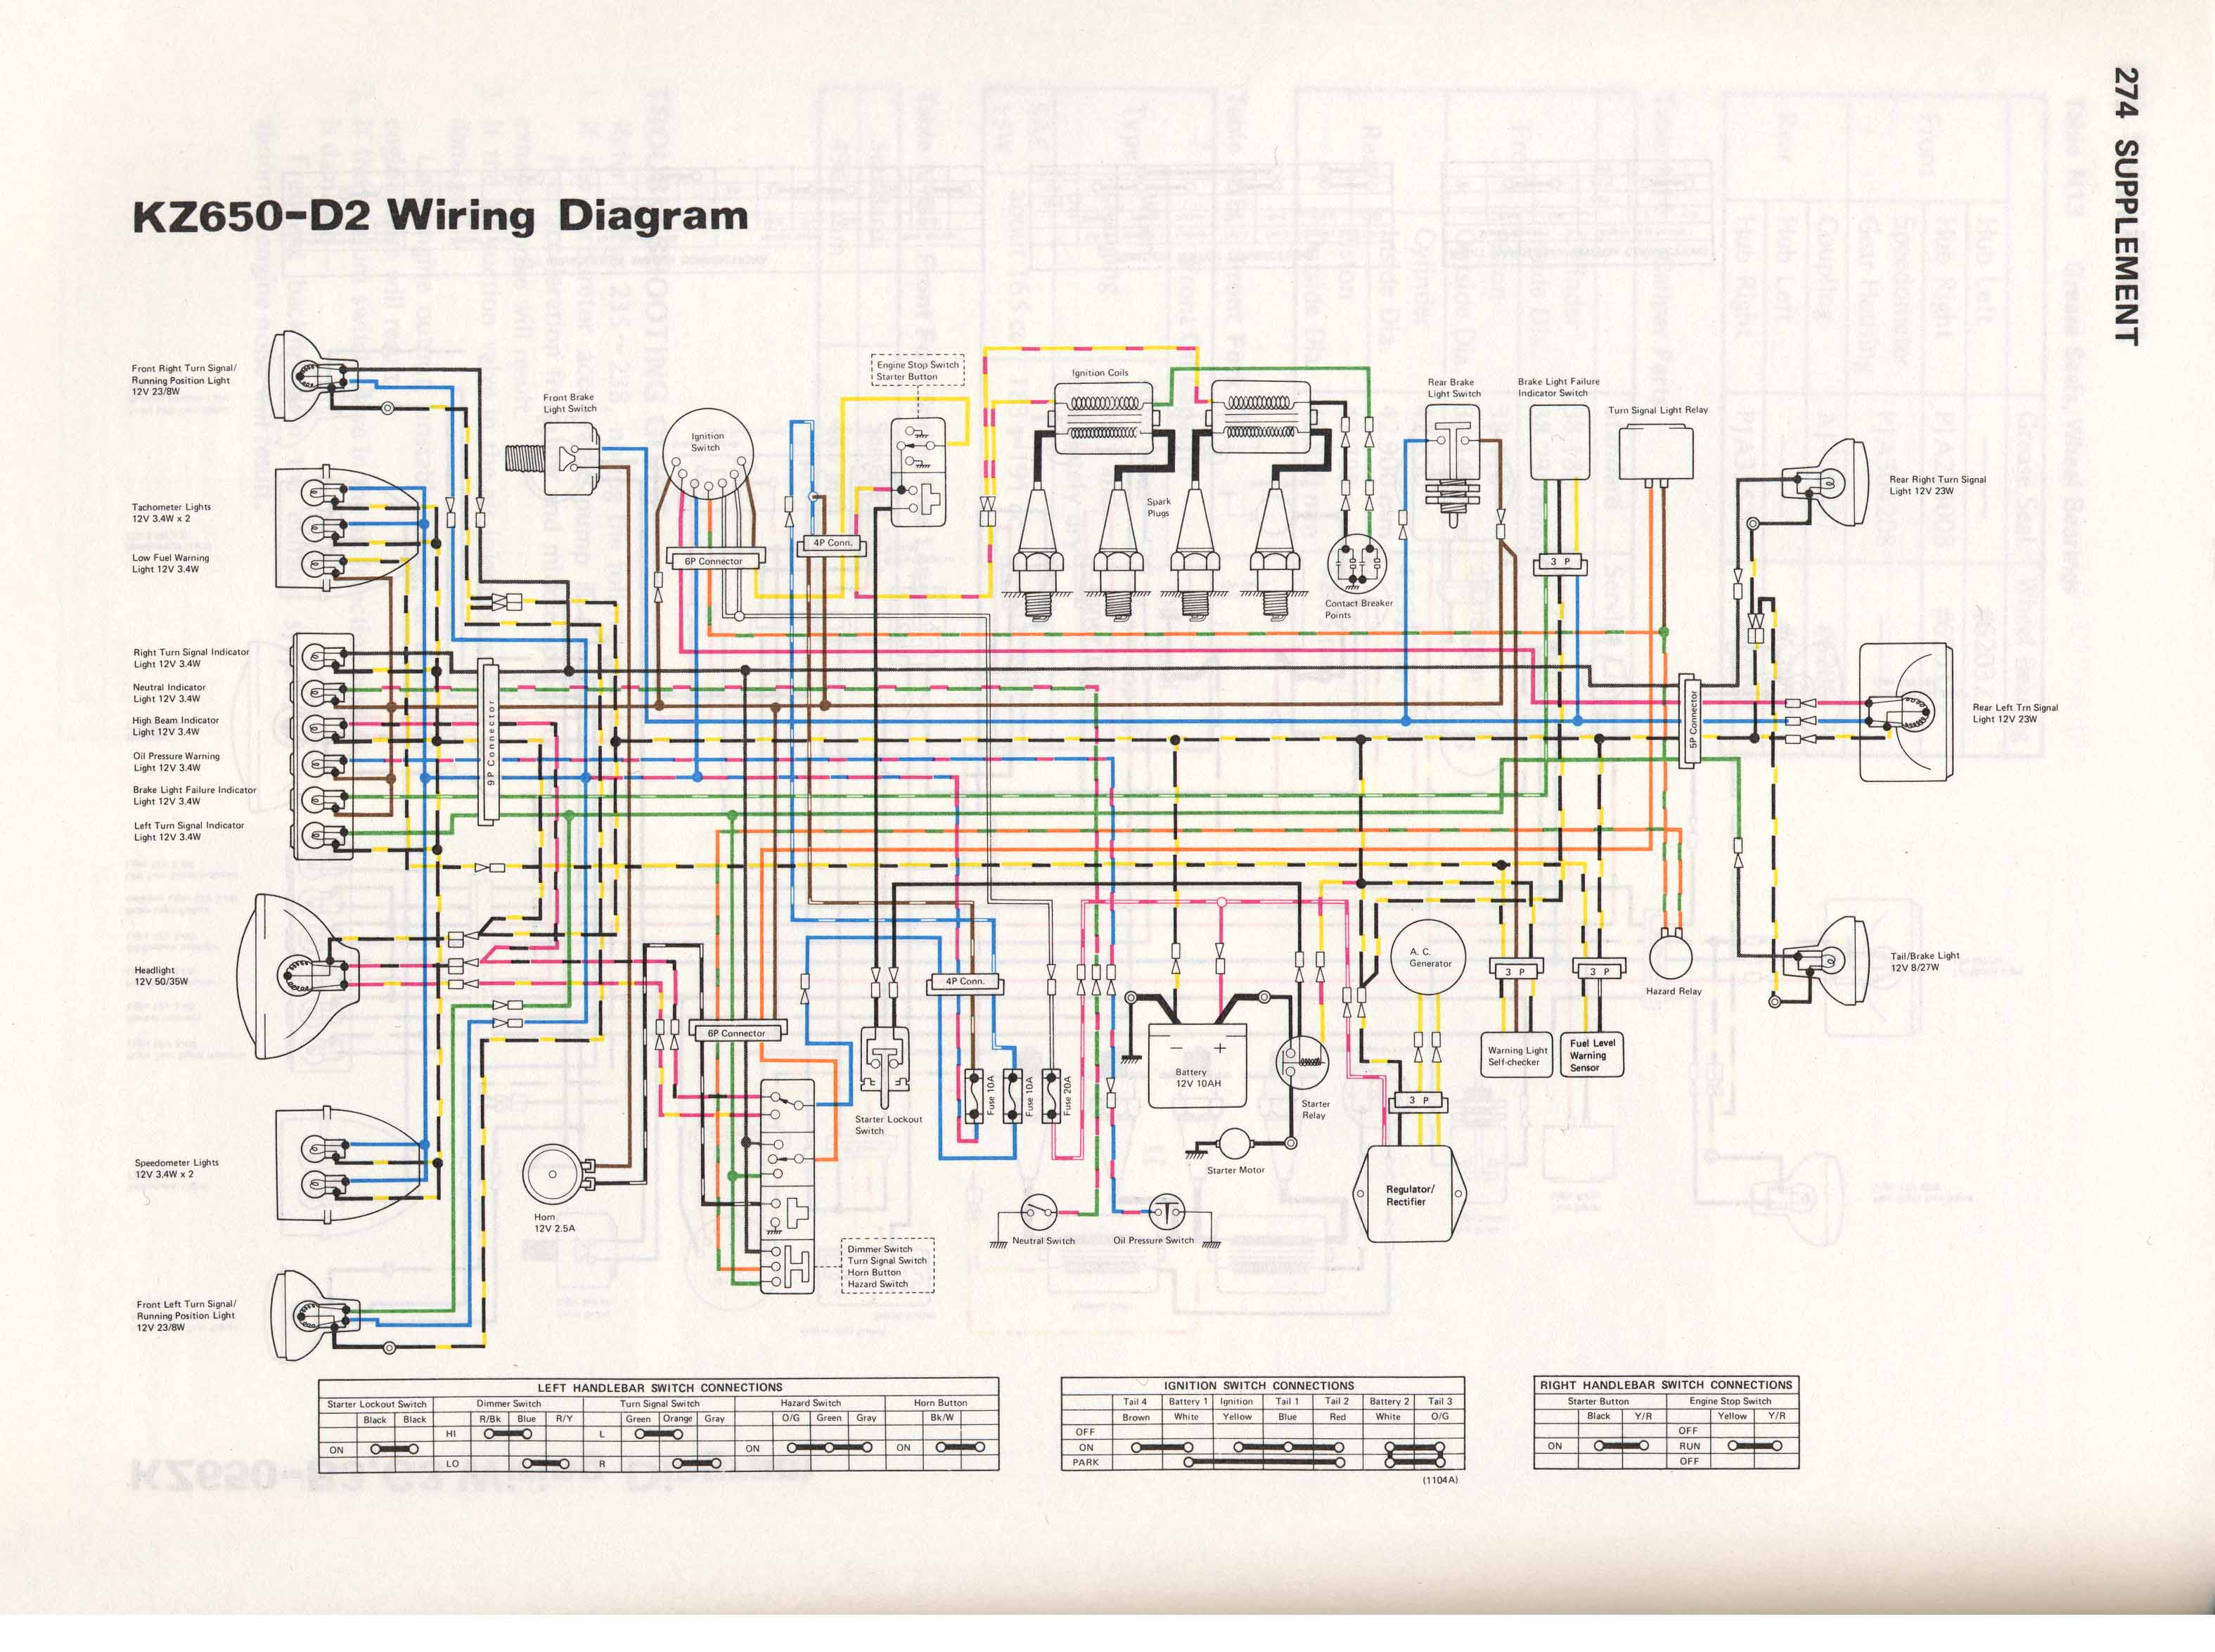 KZ650 D2 kz650 info wiring diagrams kz750 wiring diagram at n-0.co